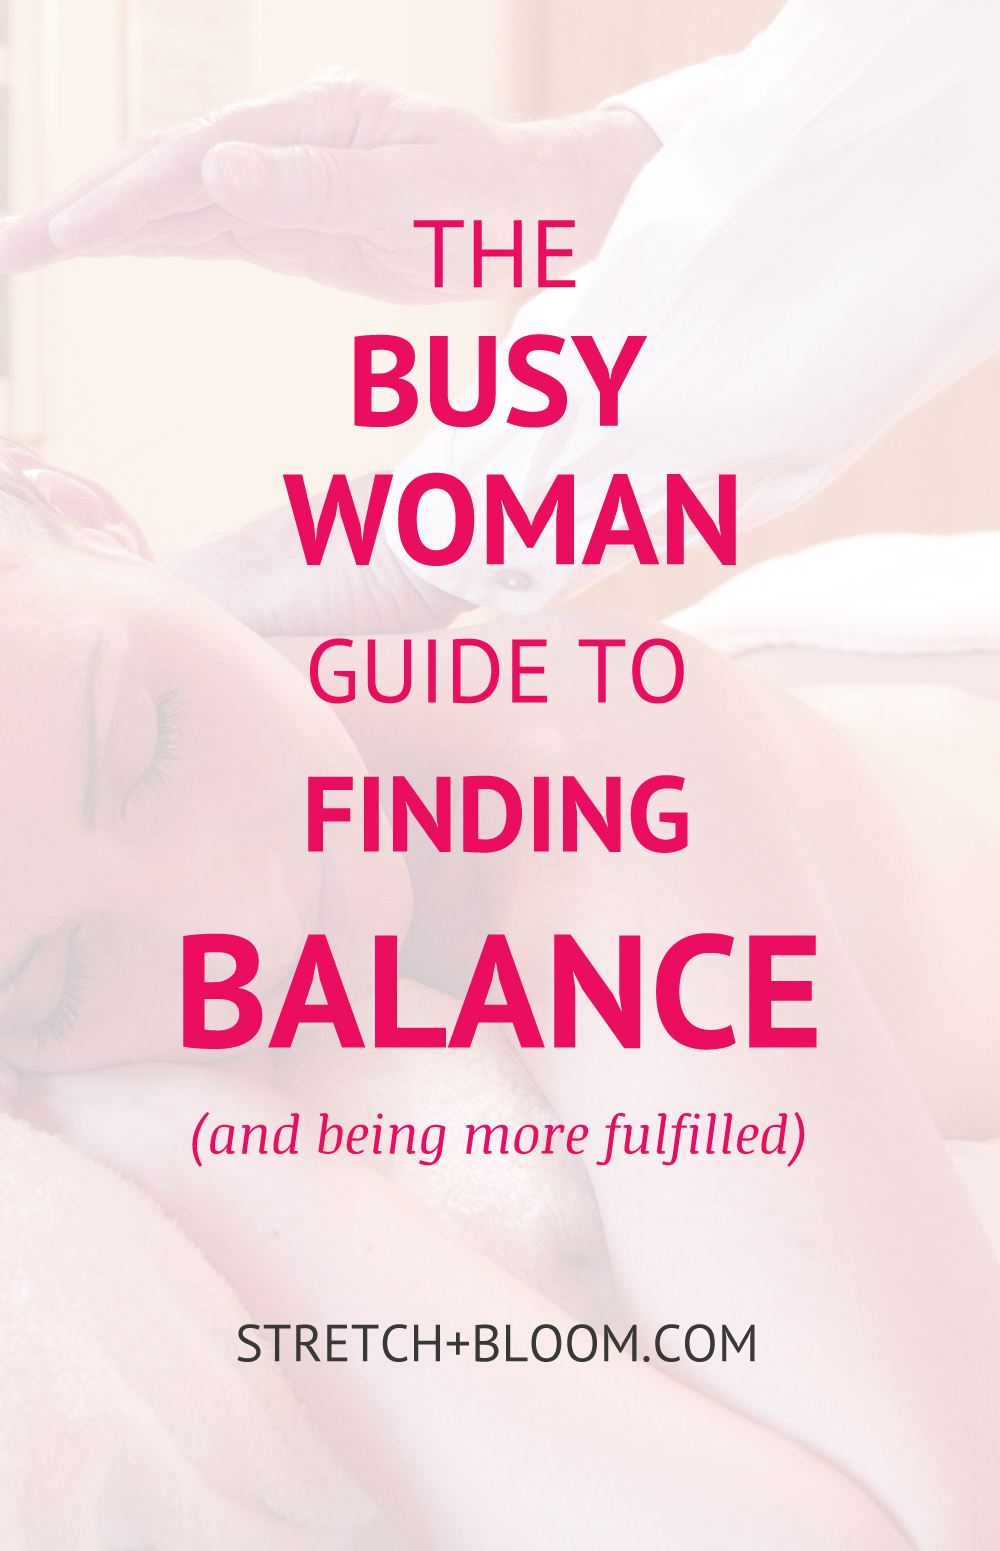 Busy woman guide to balance and being more fulfilled